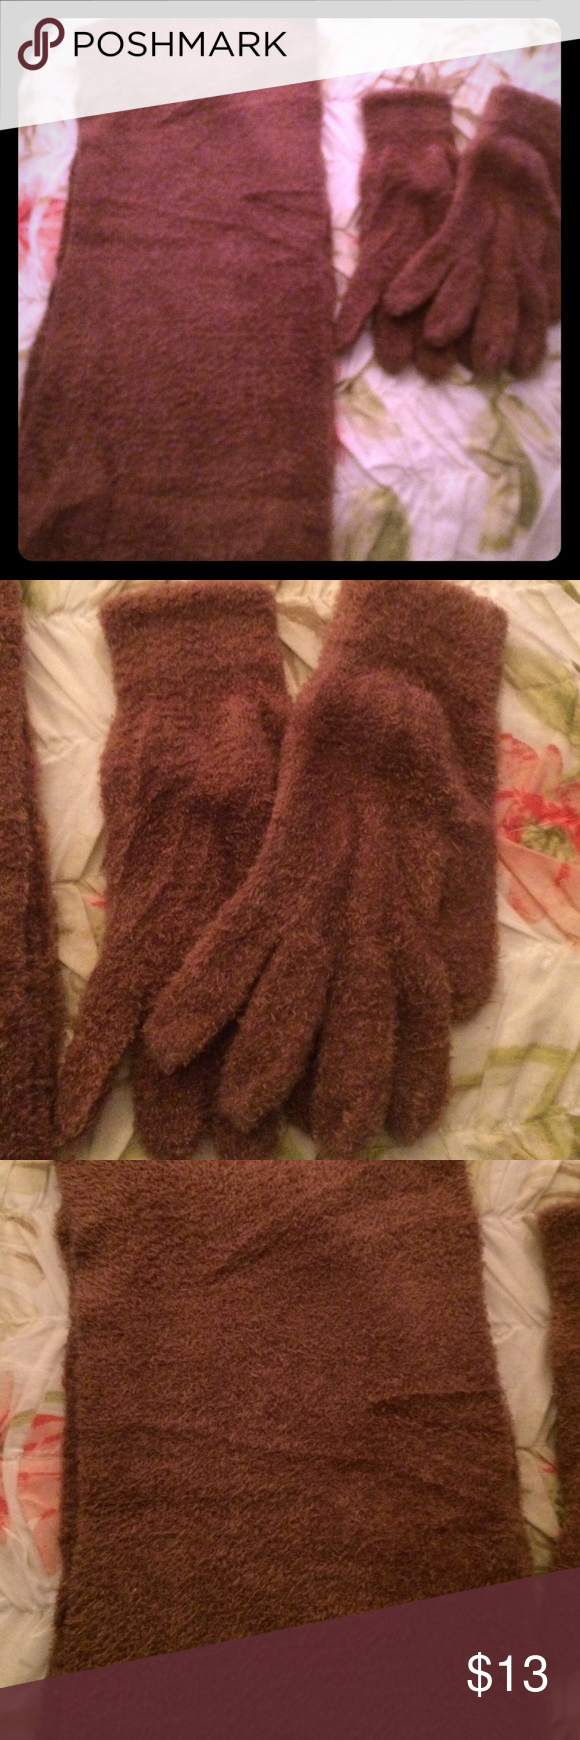 Soft scarf and glove set BNWOT Never worn. Light brown/tan. Super soft and comfortable, doesn't match my winter coat 😬. 100% nylon. Accessories Scarves & Wraps